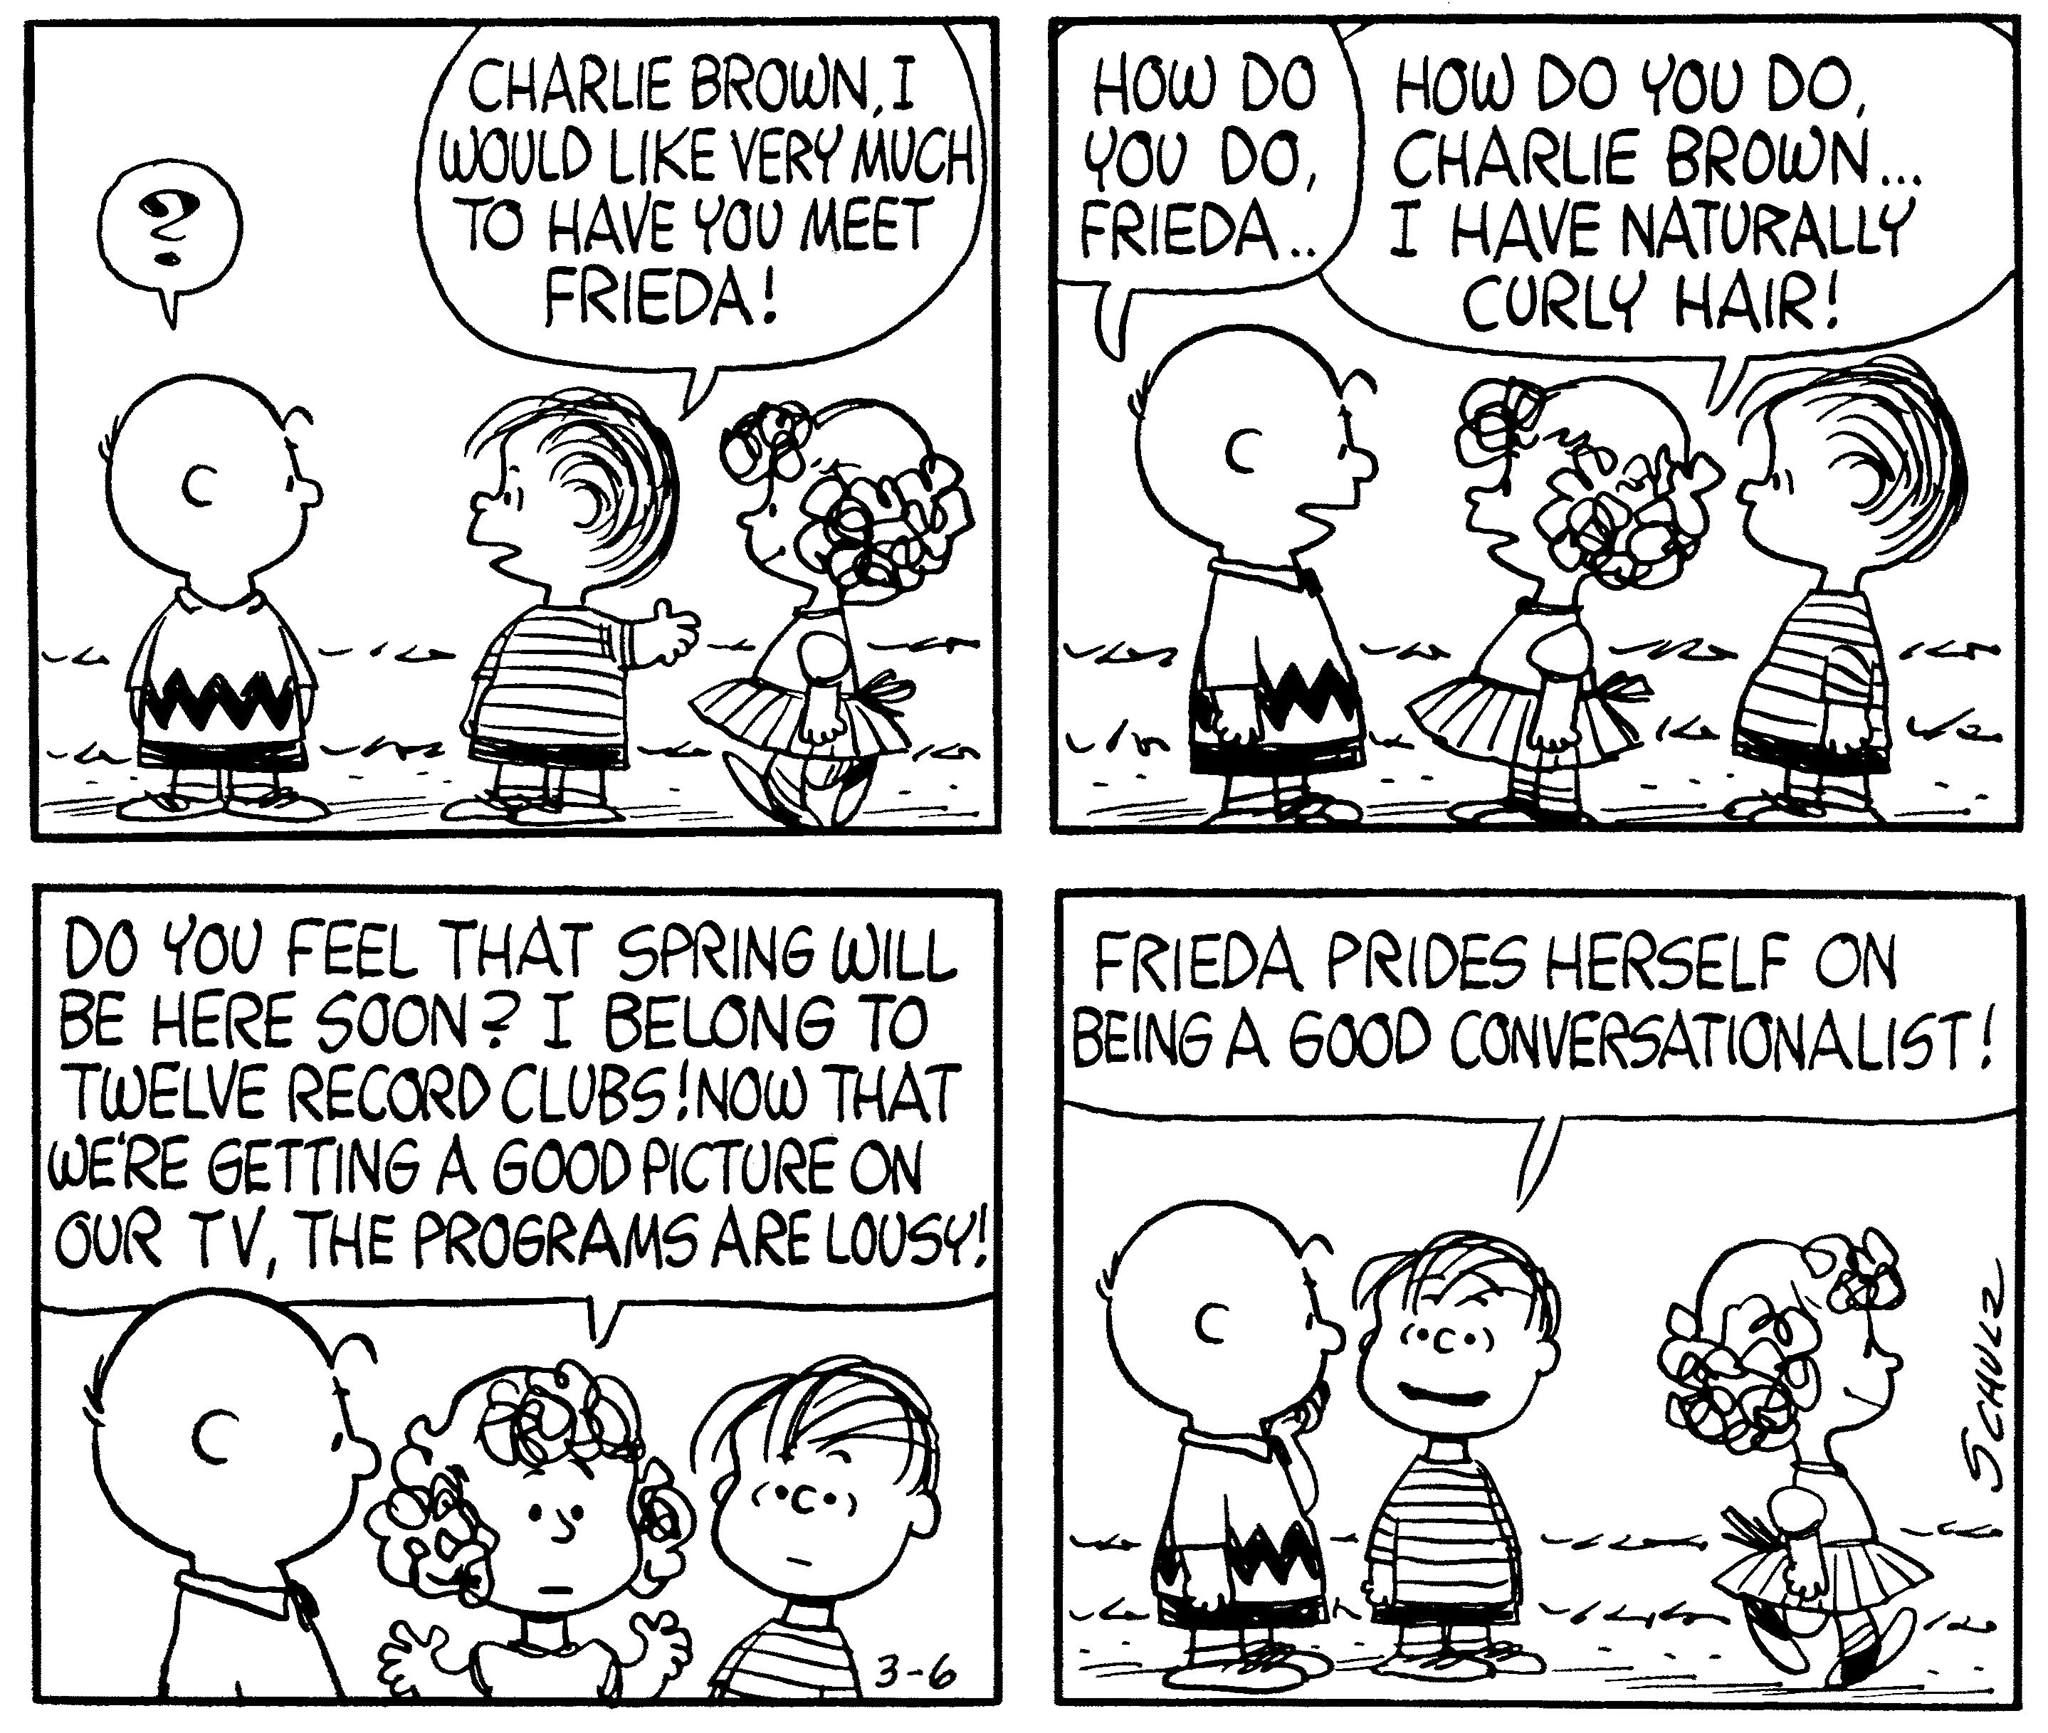 On March 6 Schulz Introduced Frieda To The Peanuts